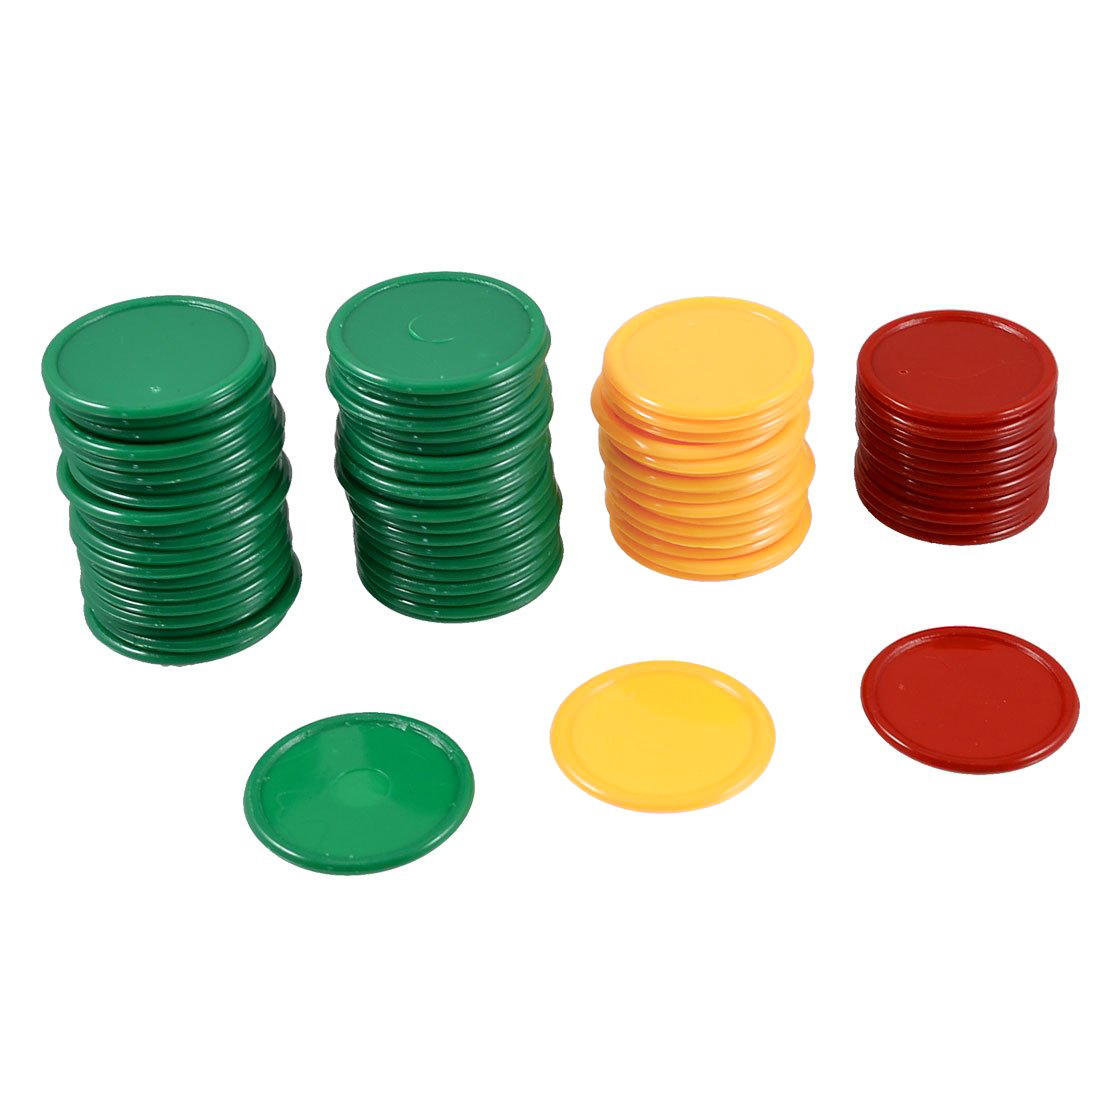 Good deal Red Yellow Green Round Shaped Mini Poker Chips Lucky Game Props 69 Pcs<br><br>Aliexpress